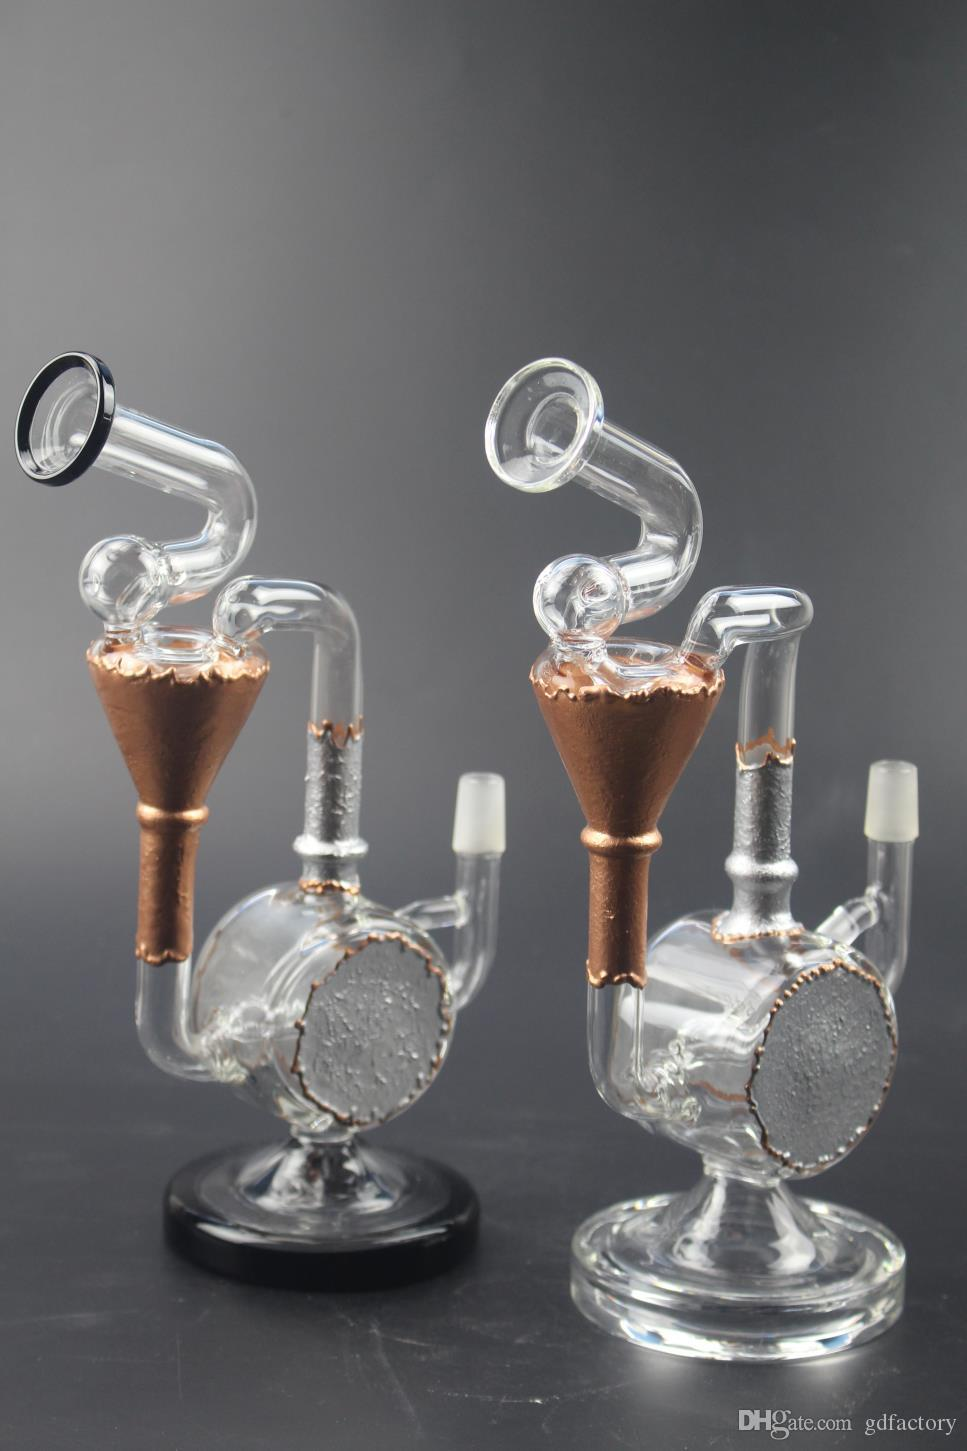 Glass bong glass bubbler water pipes heady oil rigs Water Pipes bongs dab rig with ceramic dome and nail 026